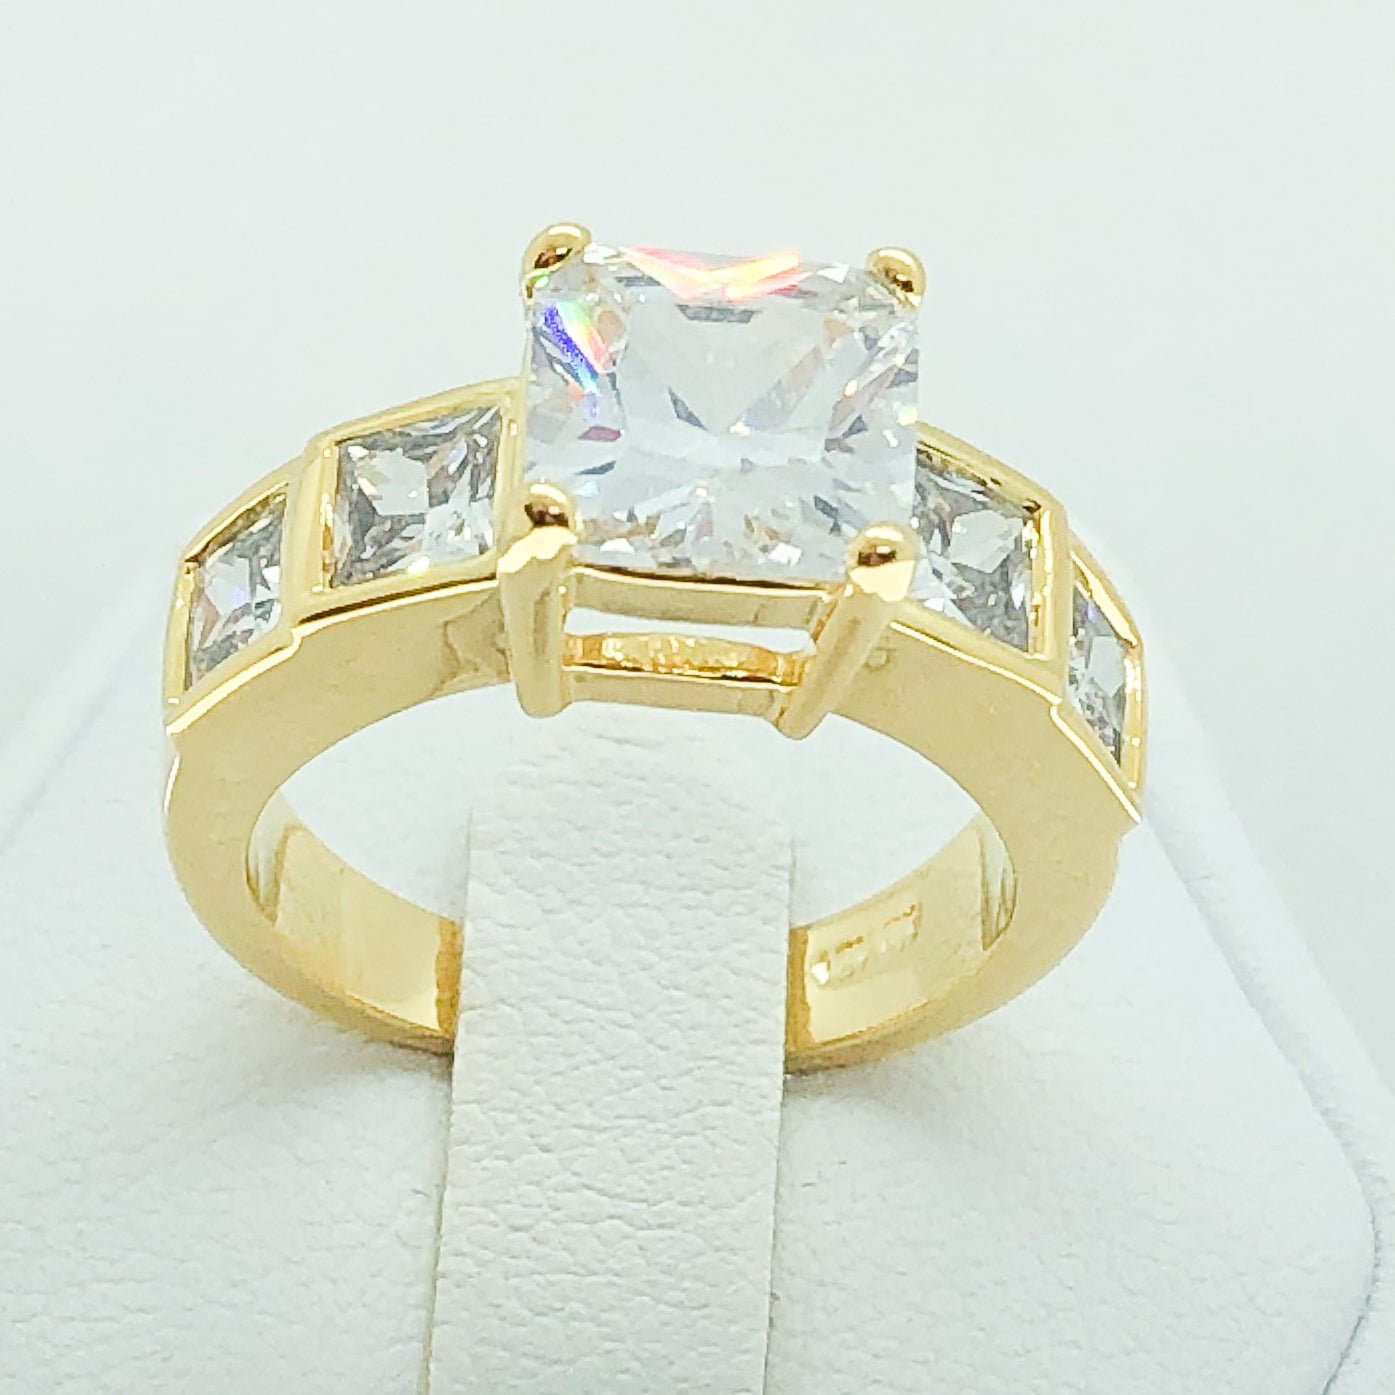 ID:R4070 Women 18K Yellow Gold GF Fashion Jewelry Engagement Wedding Sparkling Diamonique Ring Promise Gift